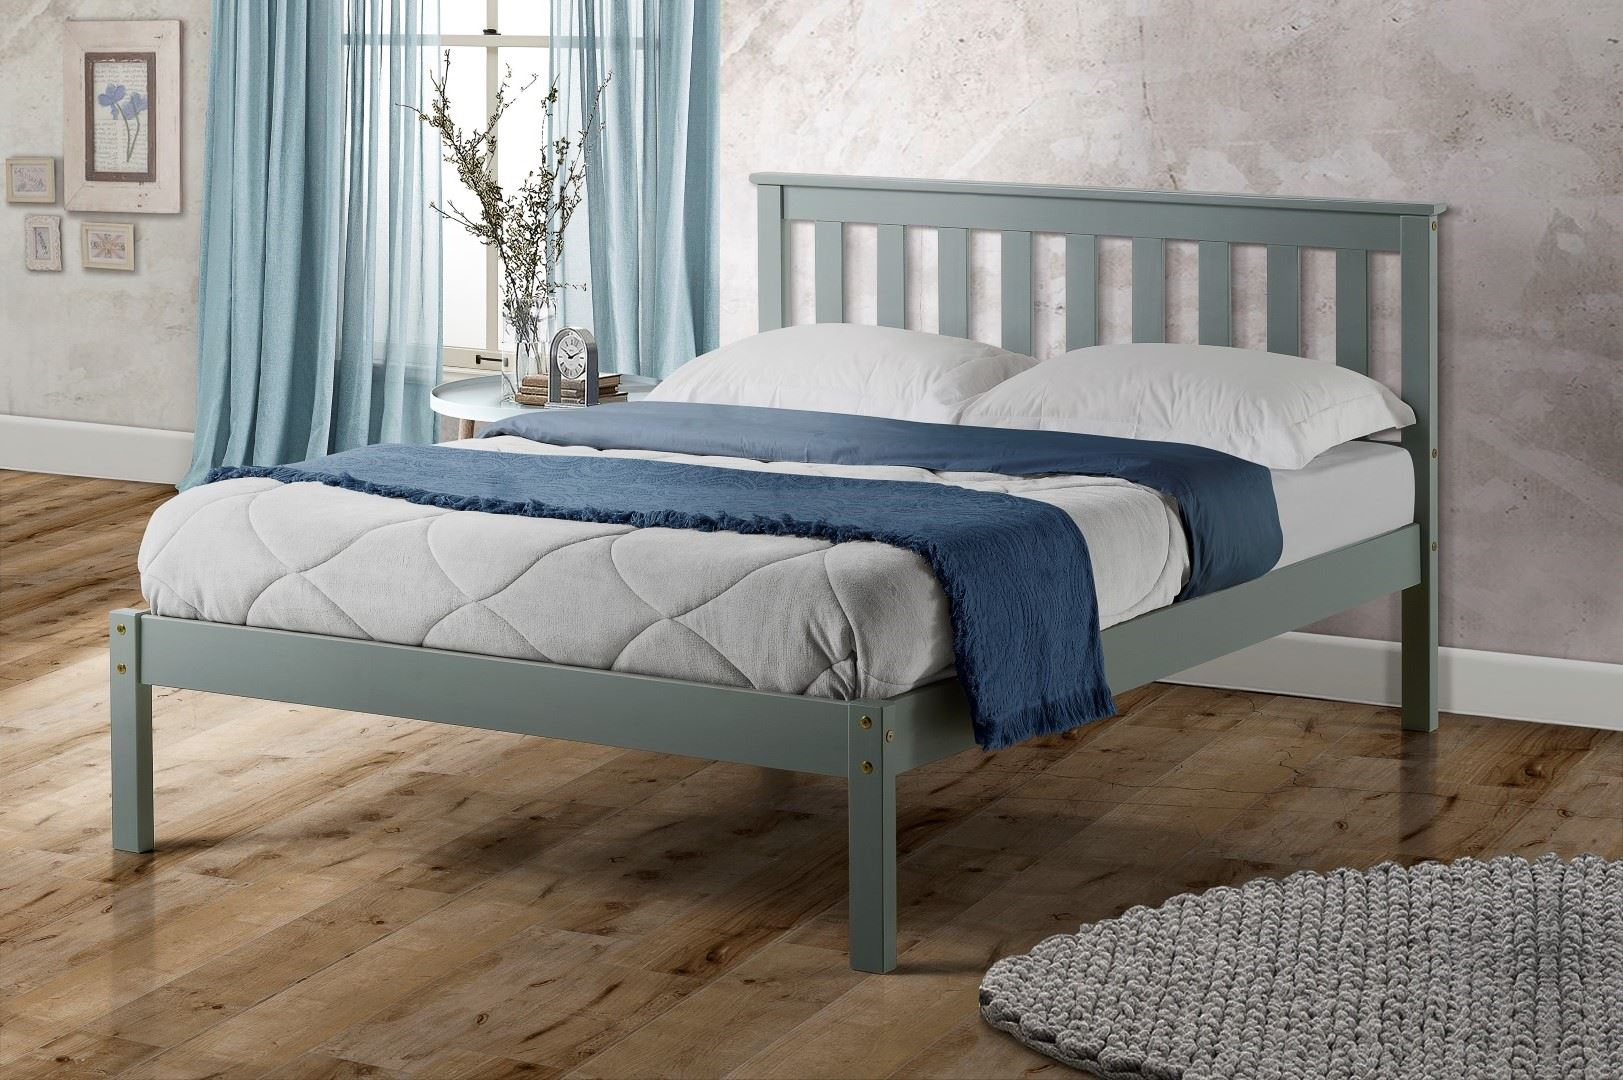 Birlea Denver Double Bed Frame Solid 135cm 4FT6 Grey Wood Shaker Style